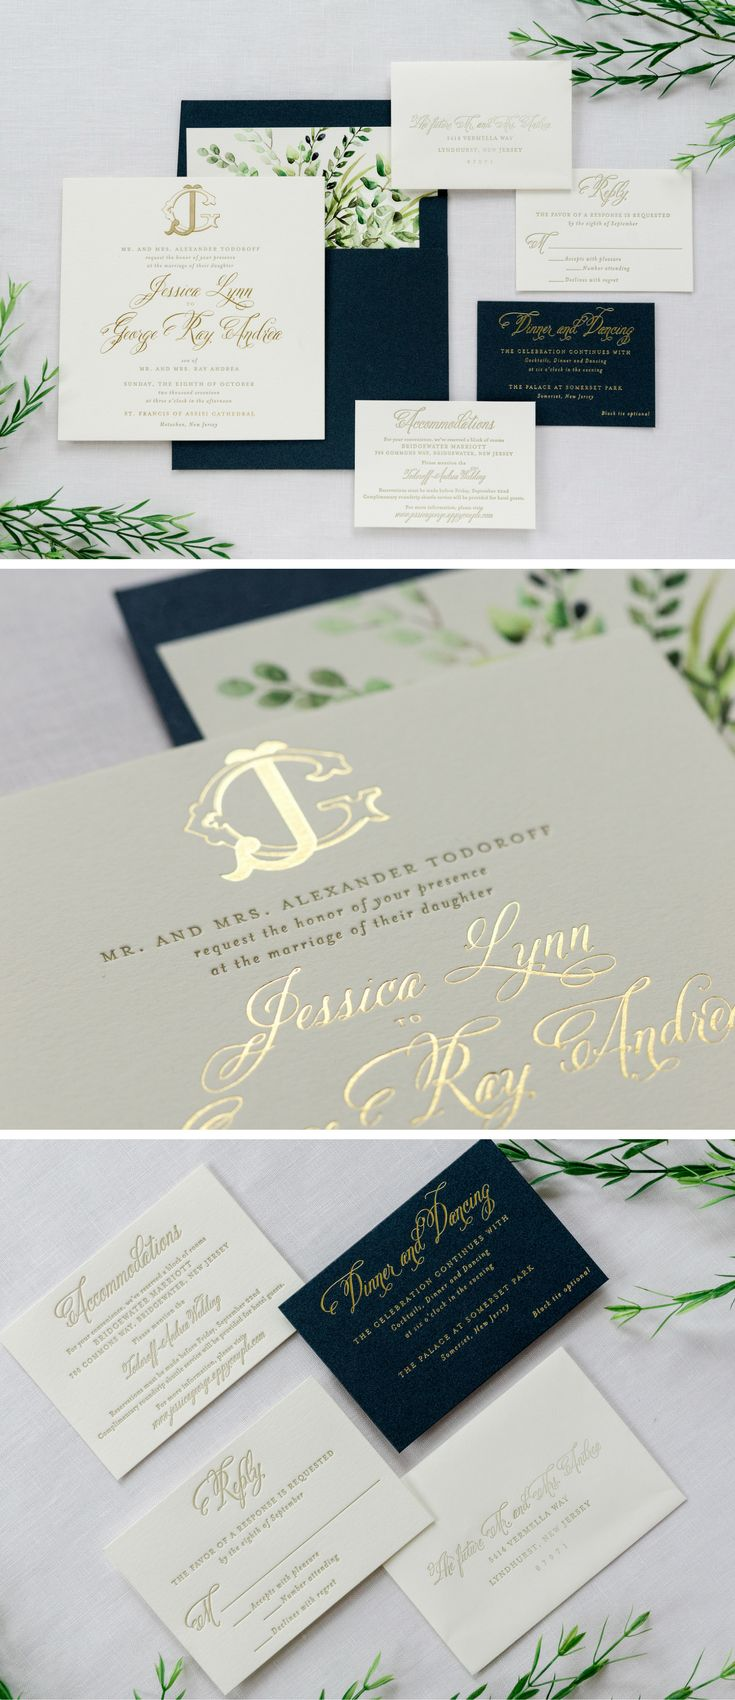 Gold foil monogram and letterpress wedding invitation